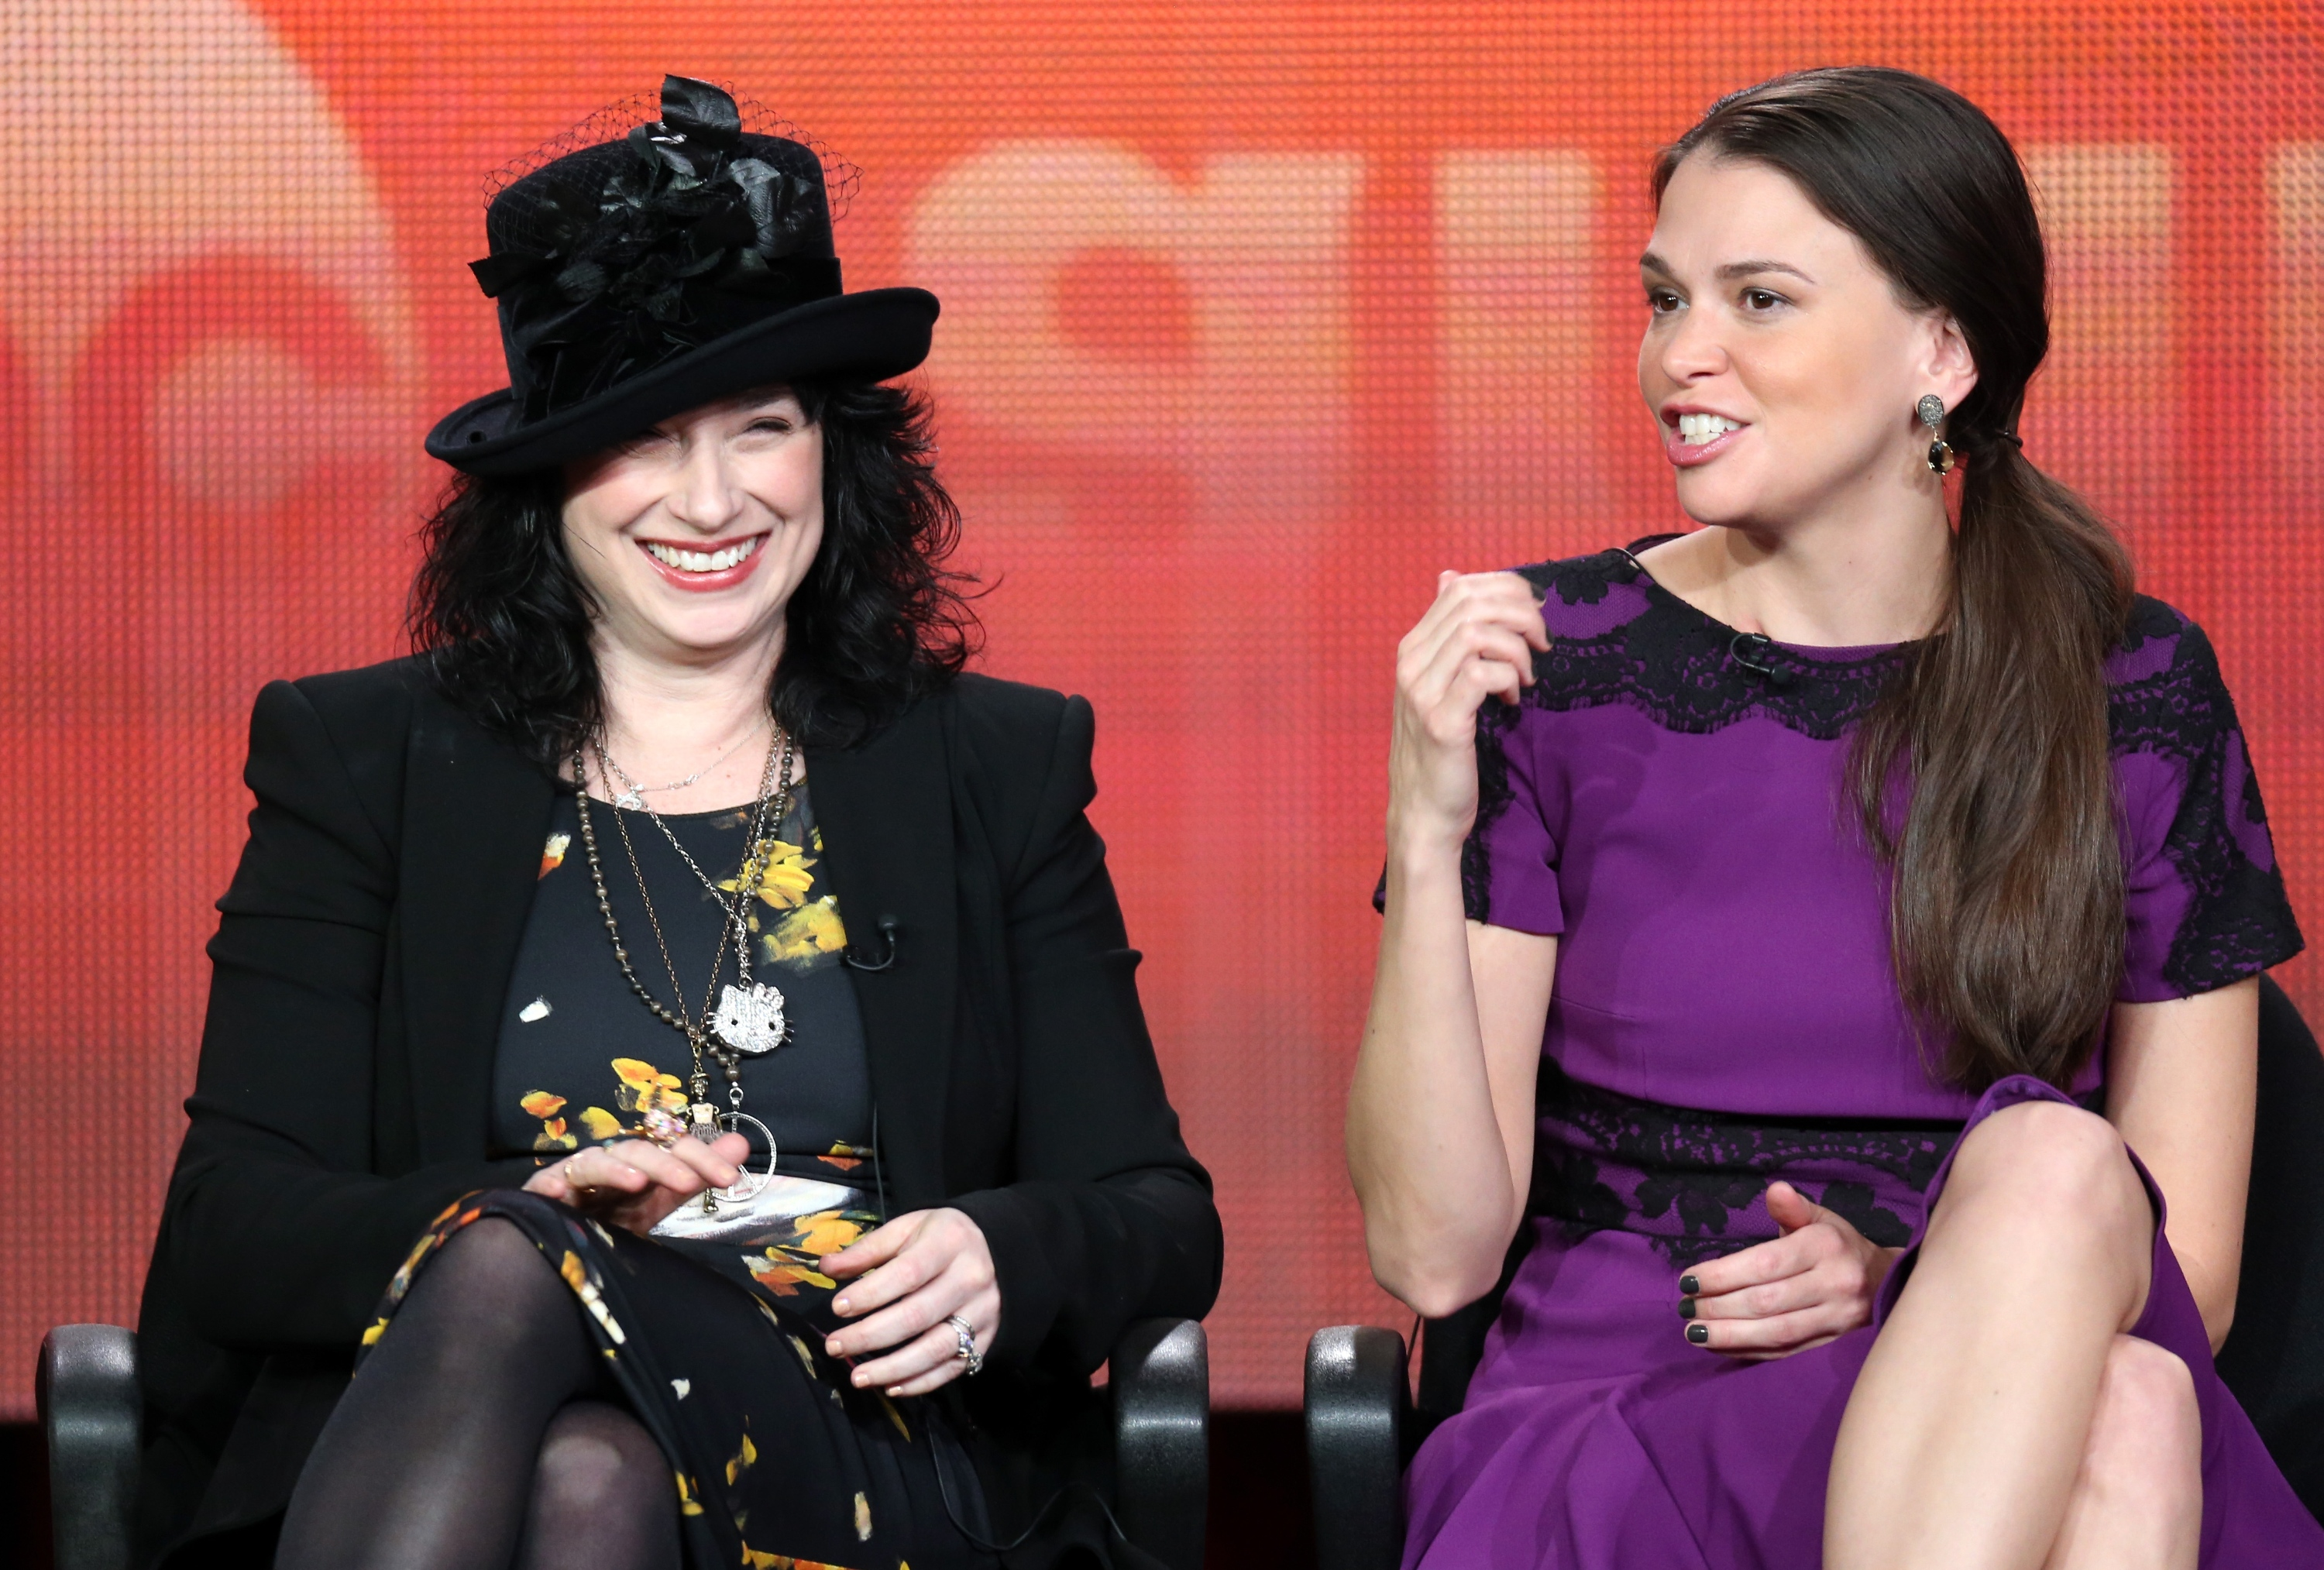 'Bunheads' Executive Producer Amy Sherman-Palladino & actress Sutton Foster (Frederick M. Brown/Getty Images)